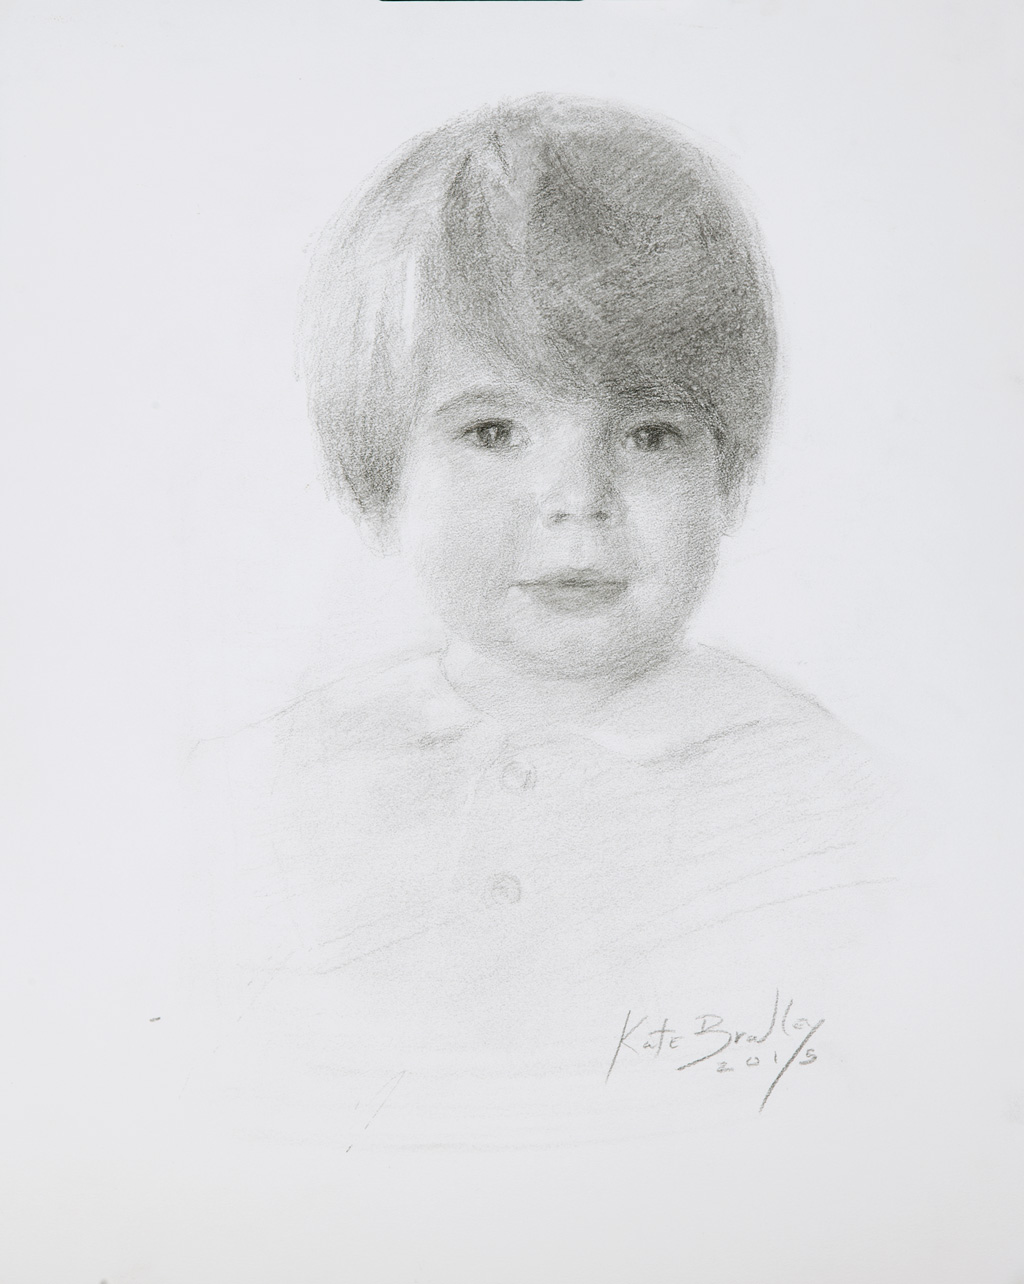 Virgil Love, Age 3, Oil